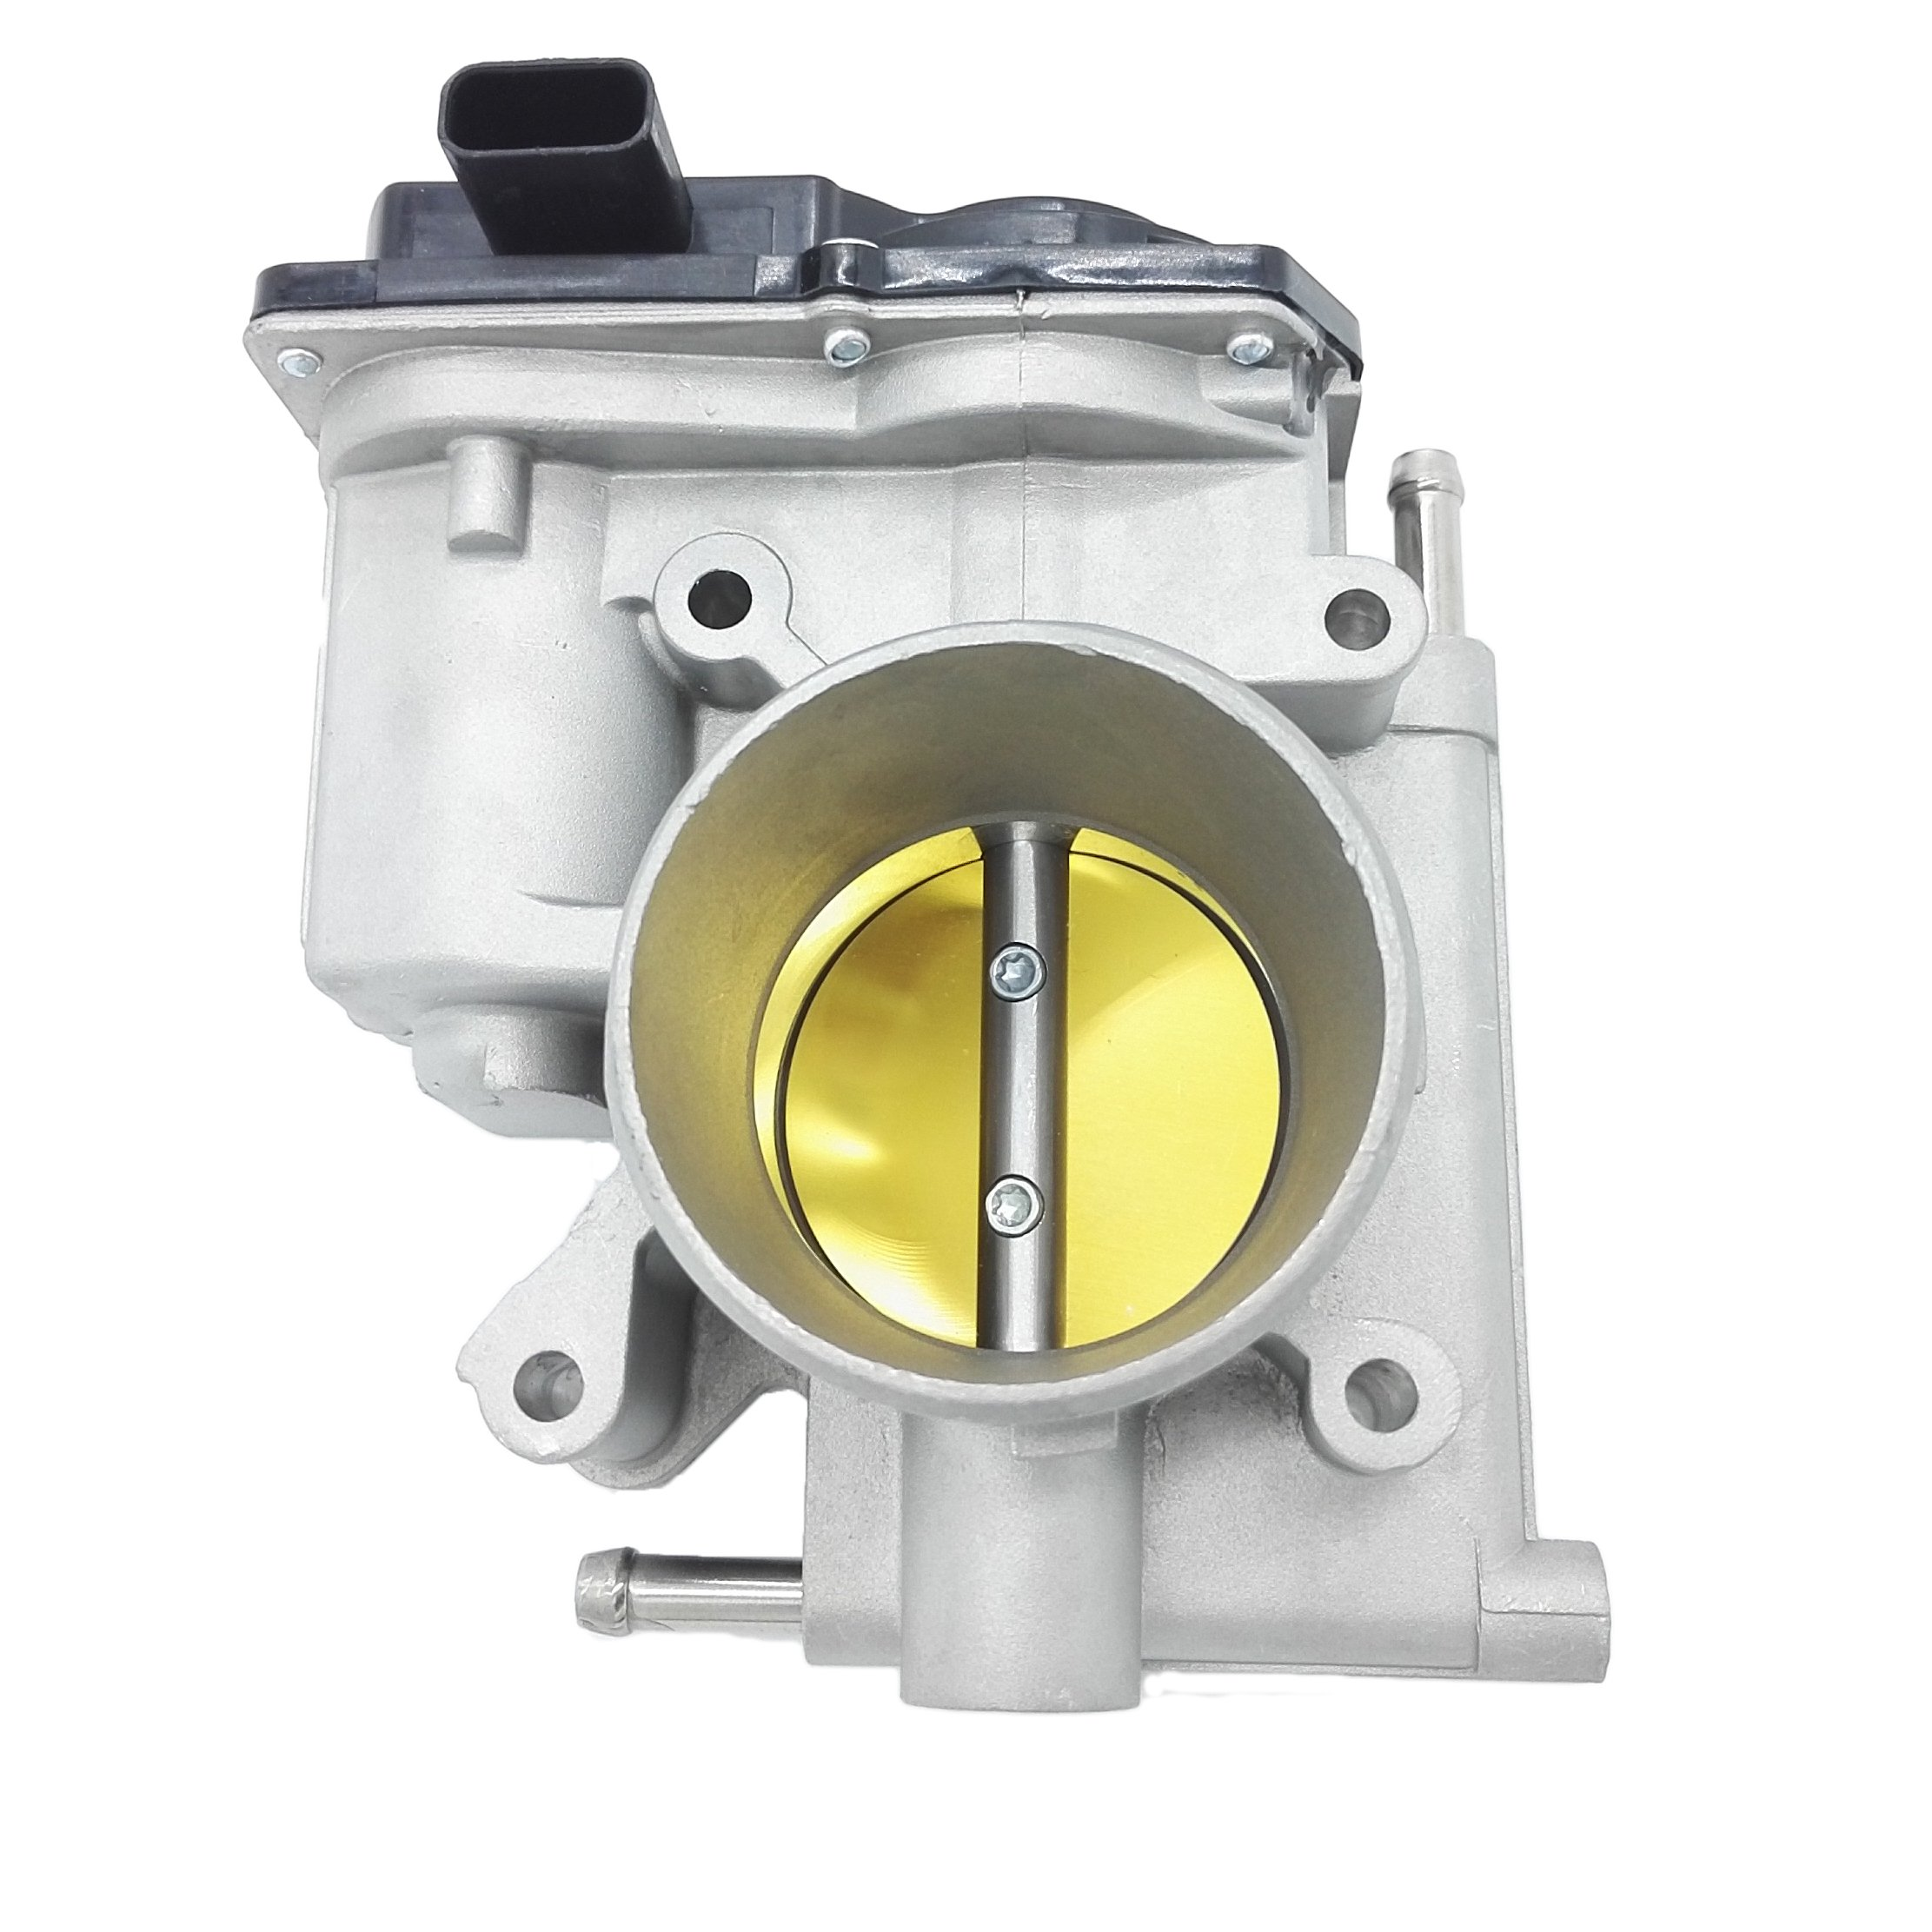 Fuel Injection Throttle Body For 2006-2009 Ford Fusion Mercury Milan 2.3L TB1040